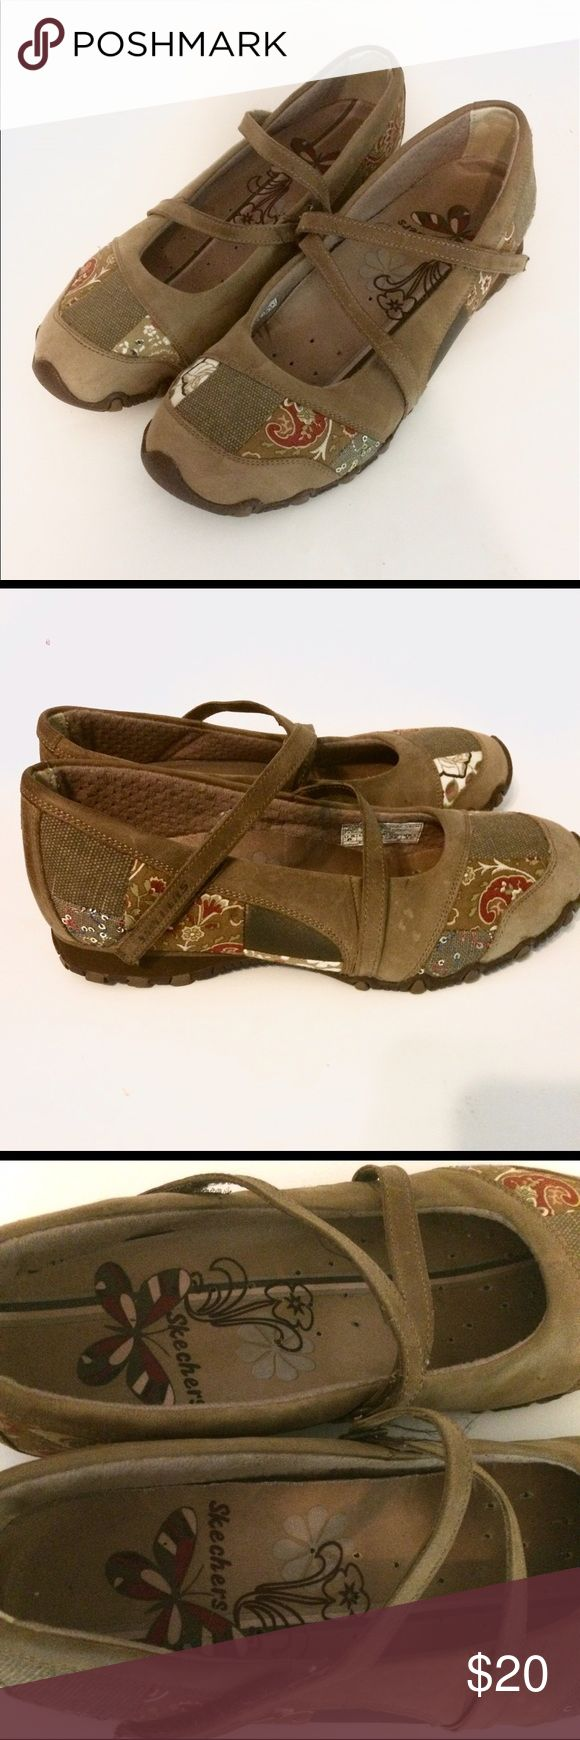 NEW! Cute Skechers Mary Janes Features suede and cross strap Velcro closure.  Super cute Boho floral pattern and very comfortable! NWOT Skechers Shoes Sandals